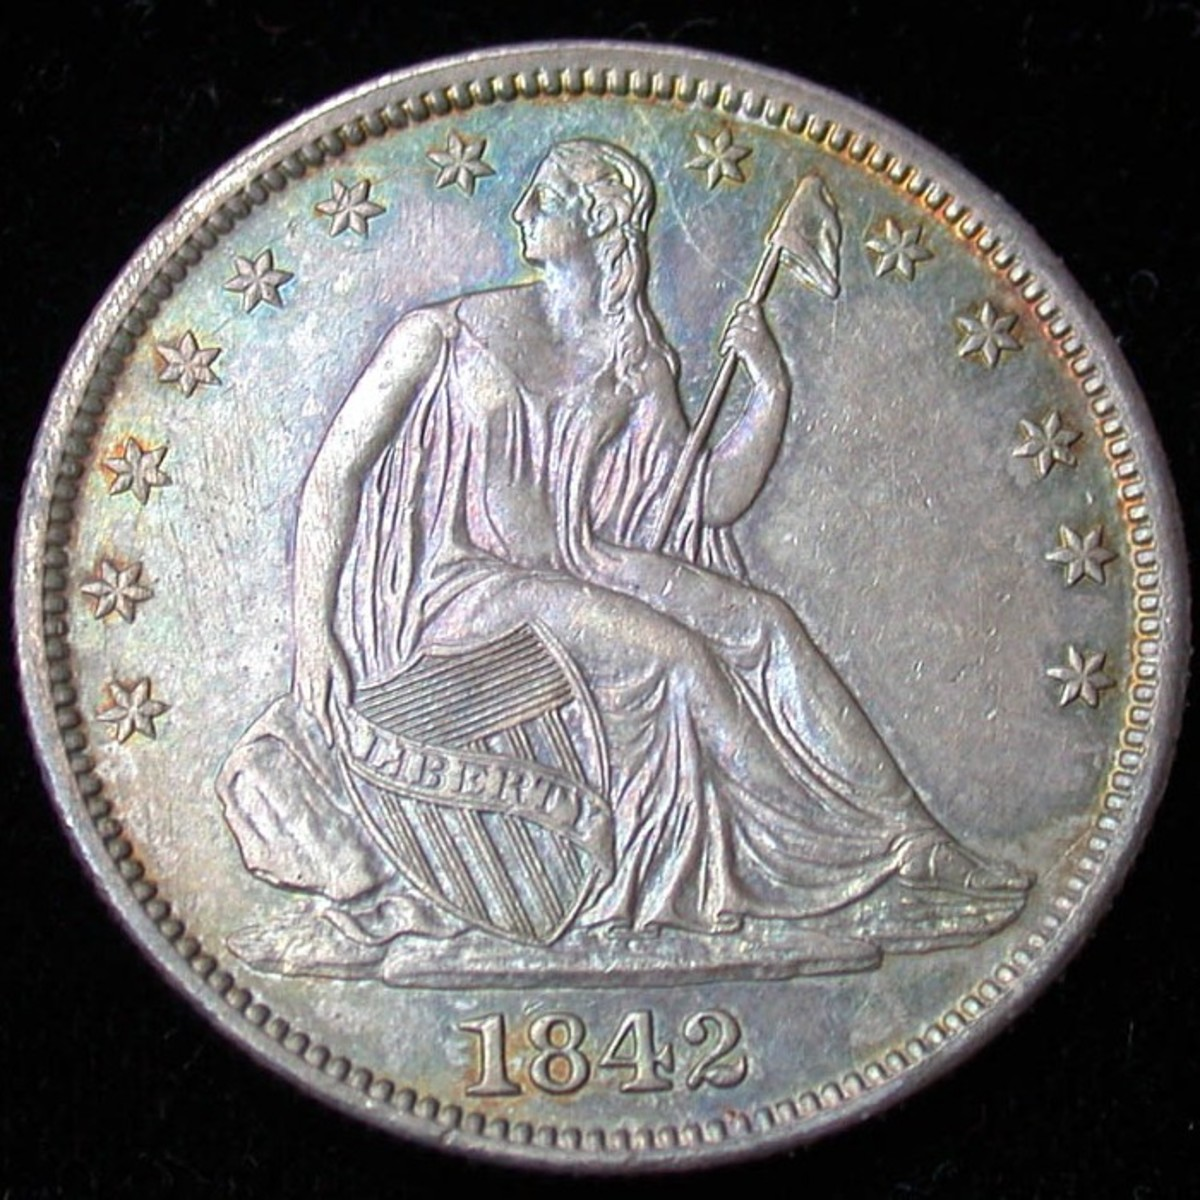 Value of a Seated Liberty Half Dollar